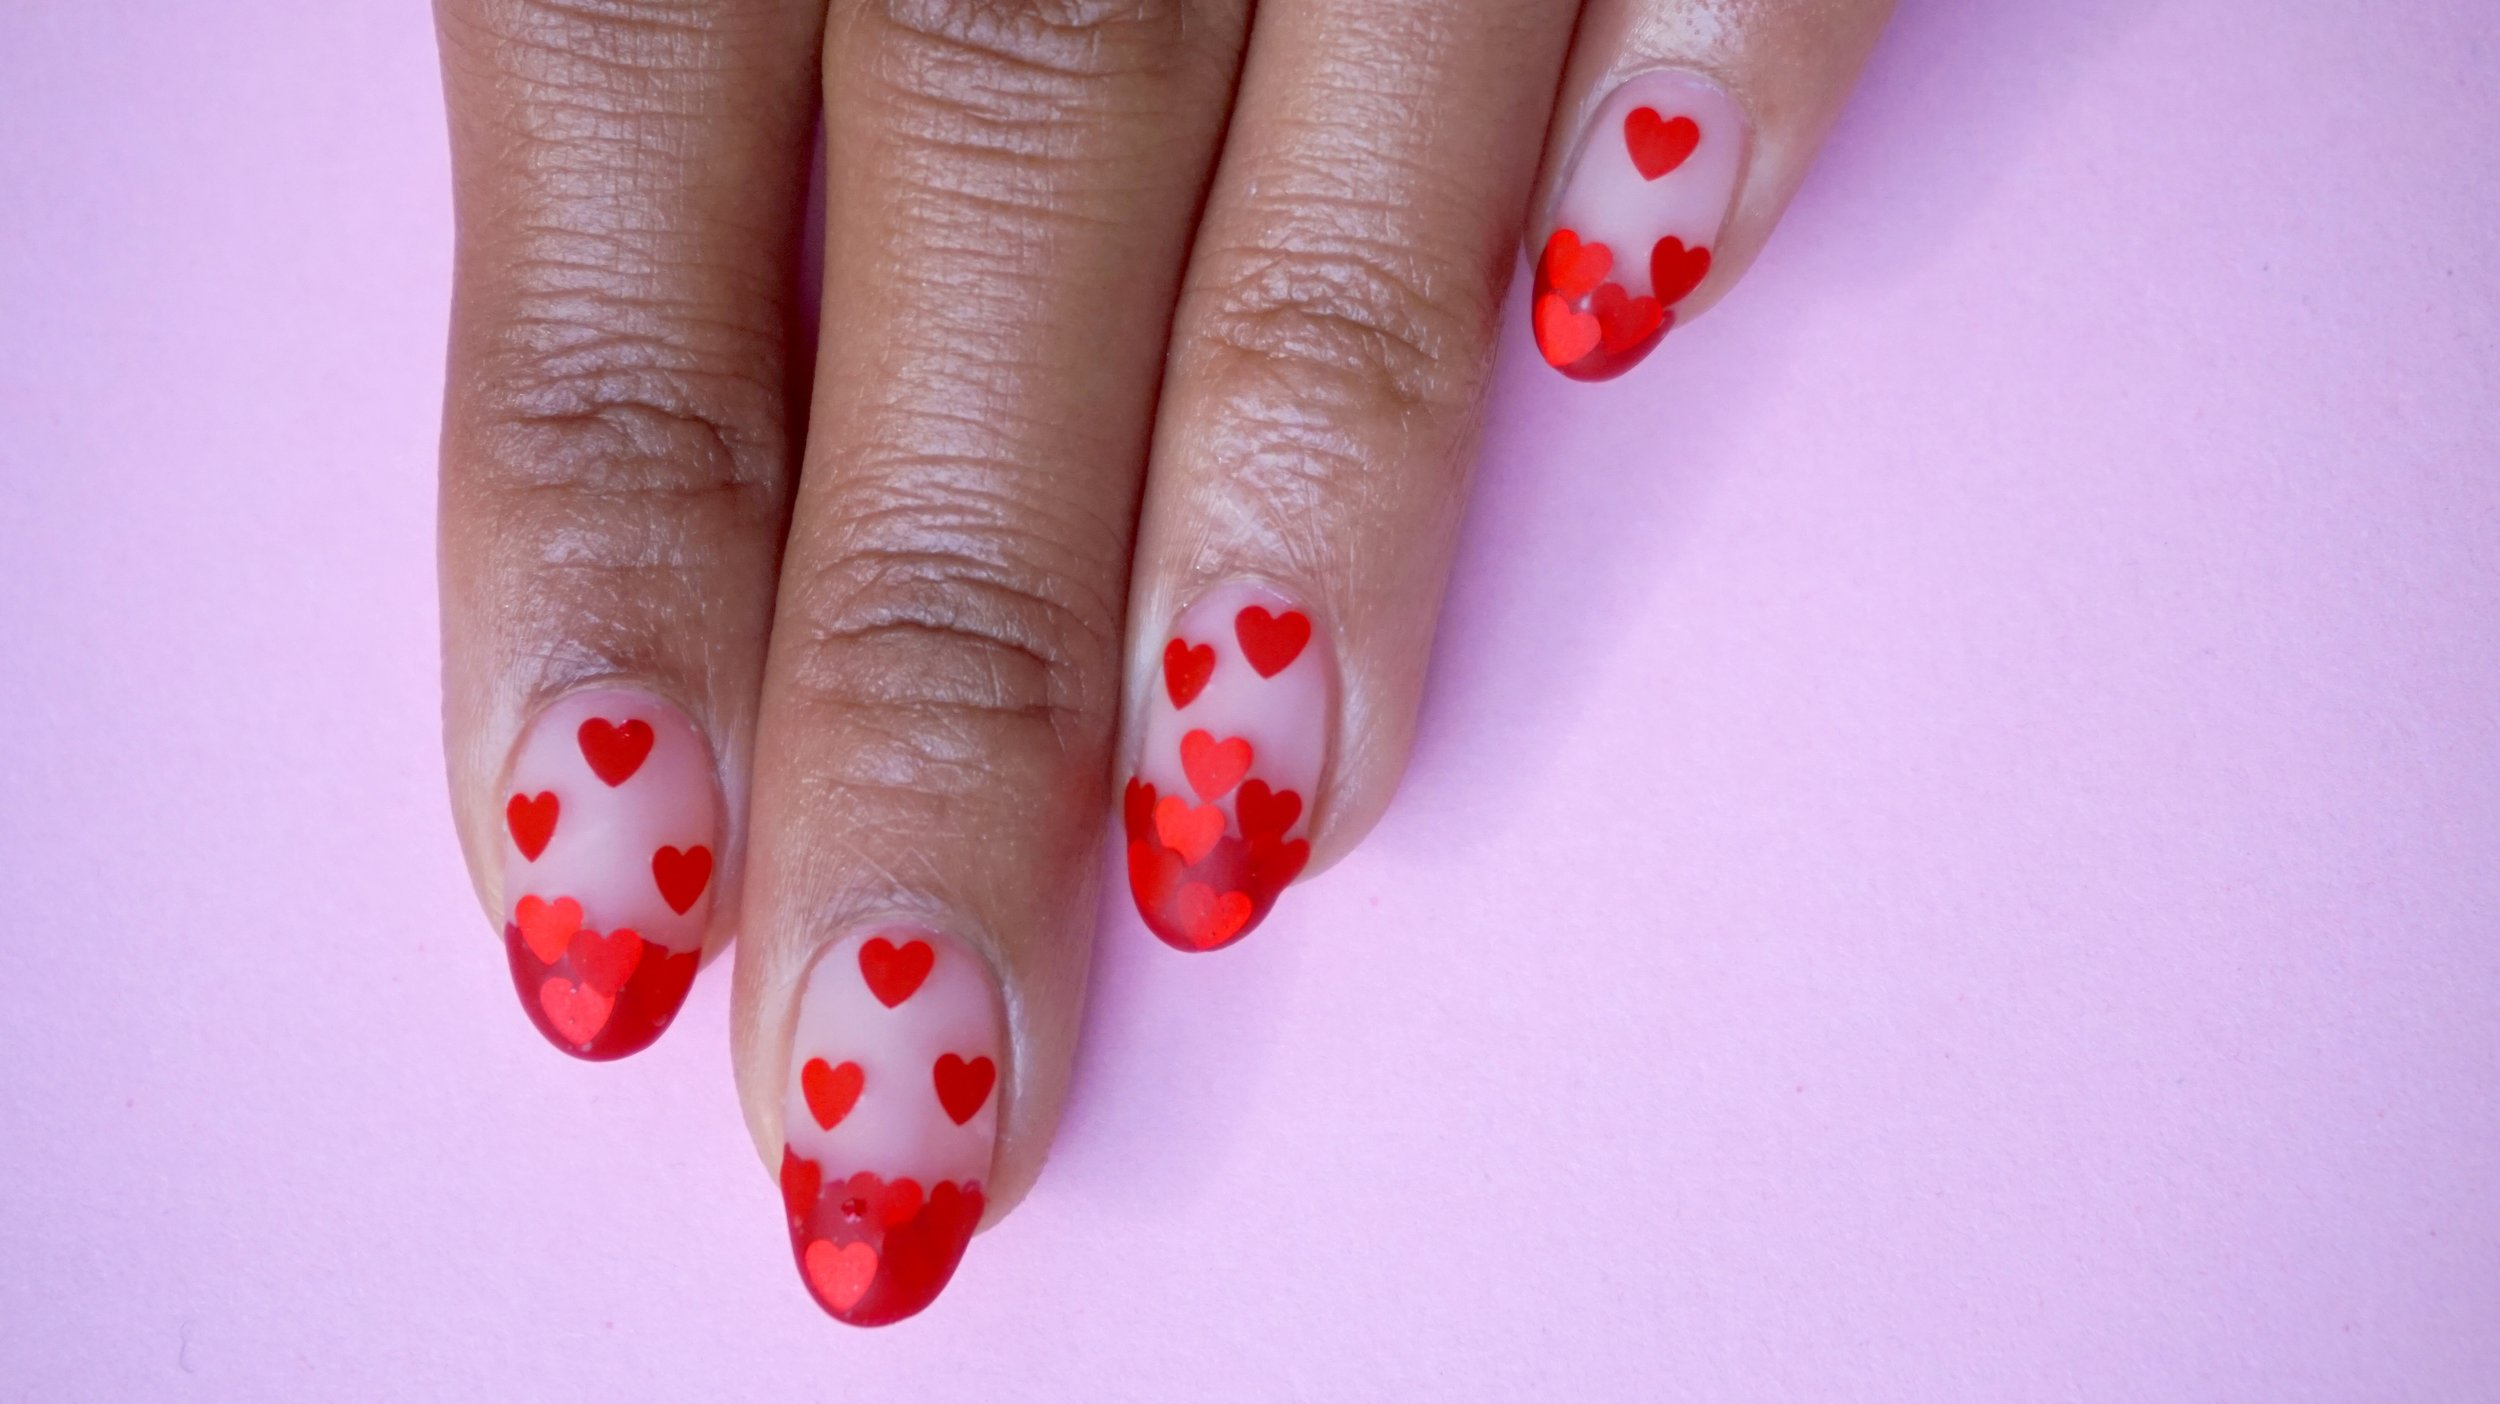 Theme: Mood.  Cascading hearts was meant to symbolize the feeling of falling in love. Get it!?!